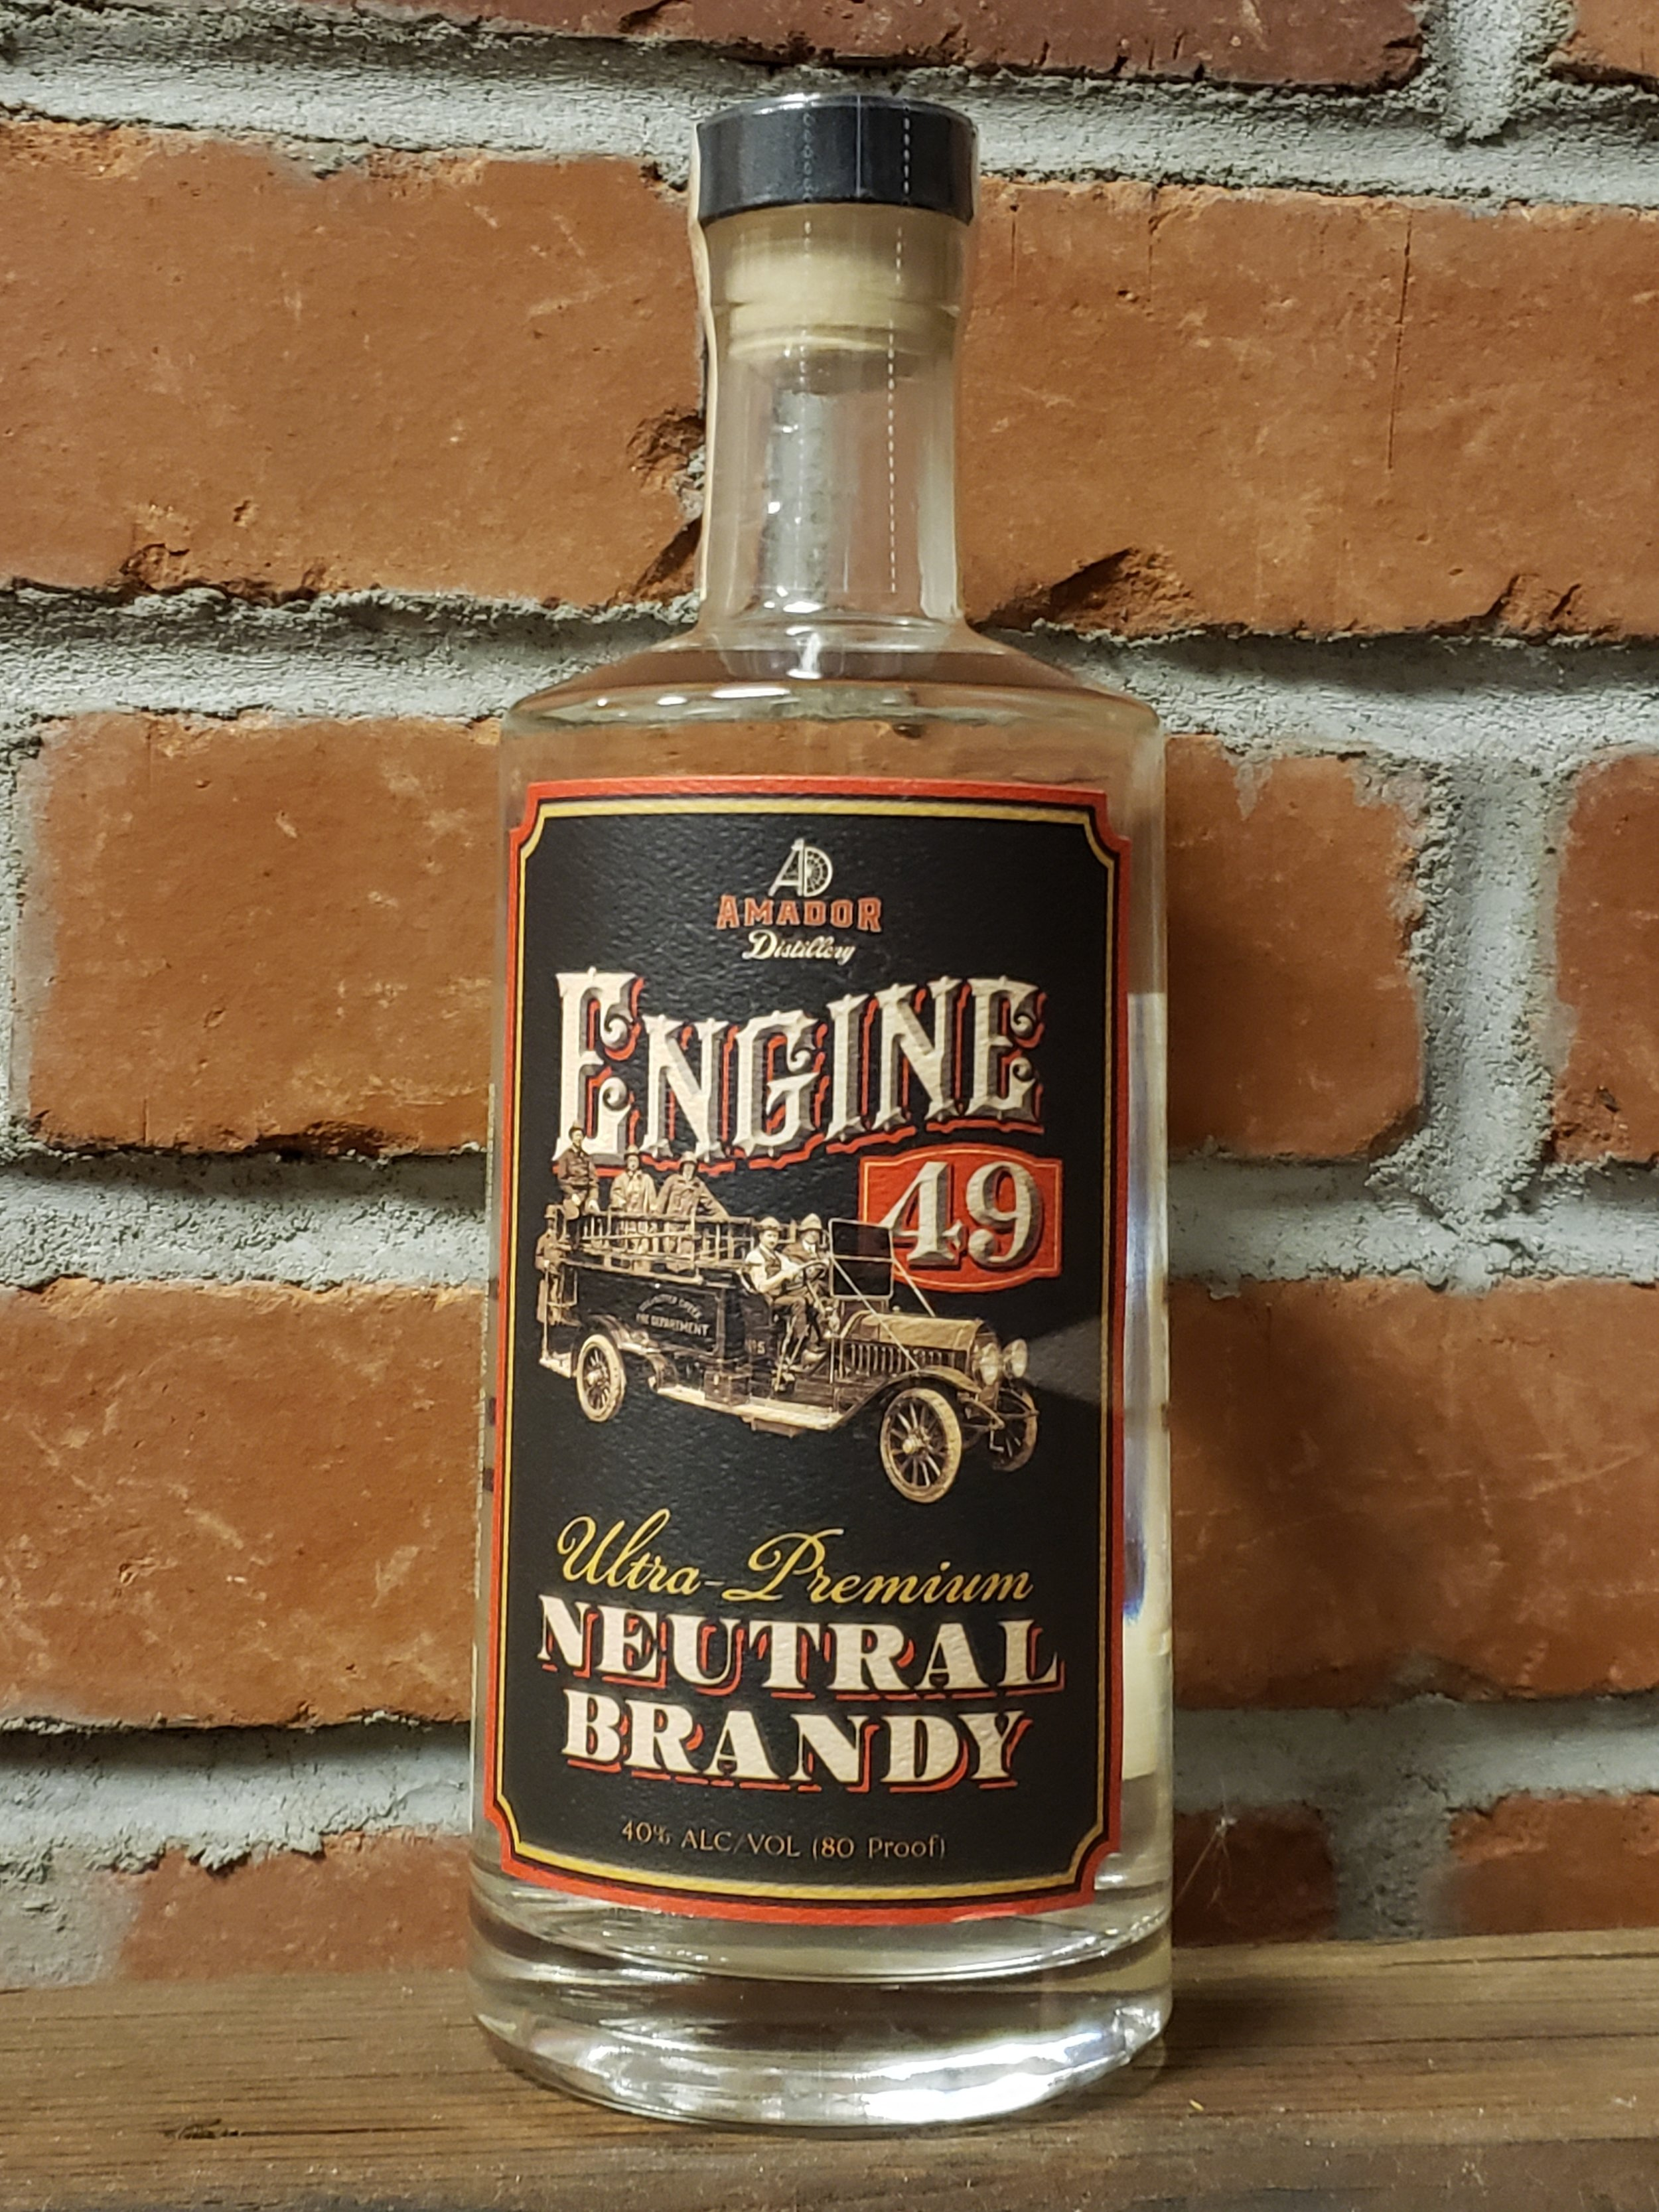 Neutral Brandy - Neutral Brandy follows the path of a vodka style spirit without filtering and made from wine. The big difference of Neutral Brandy is the more intense flavors that vodka lacks. This spirit is best used in a cocktail with high acidic fruits, such as grapefruit or cranberry, for an easy, yet complex cocktail.80 PF